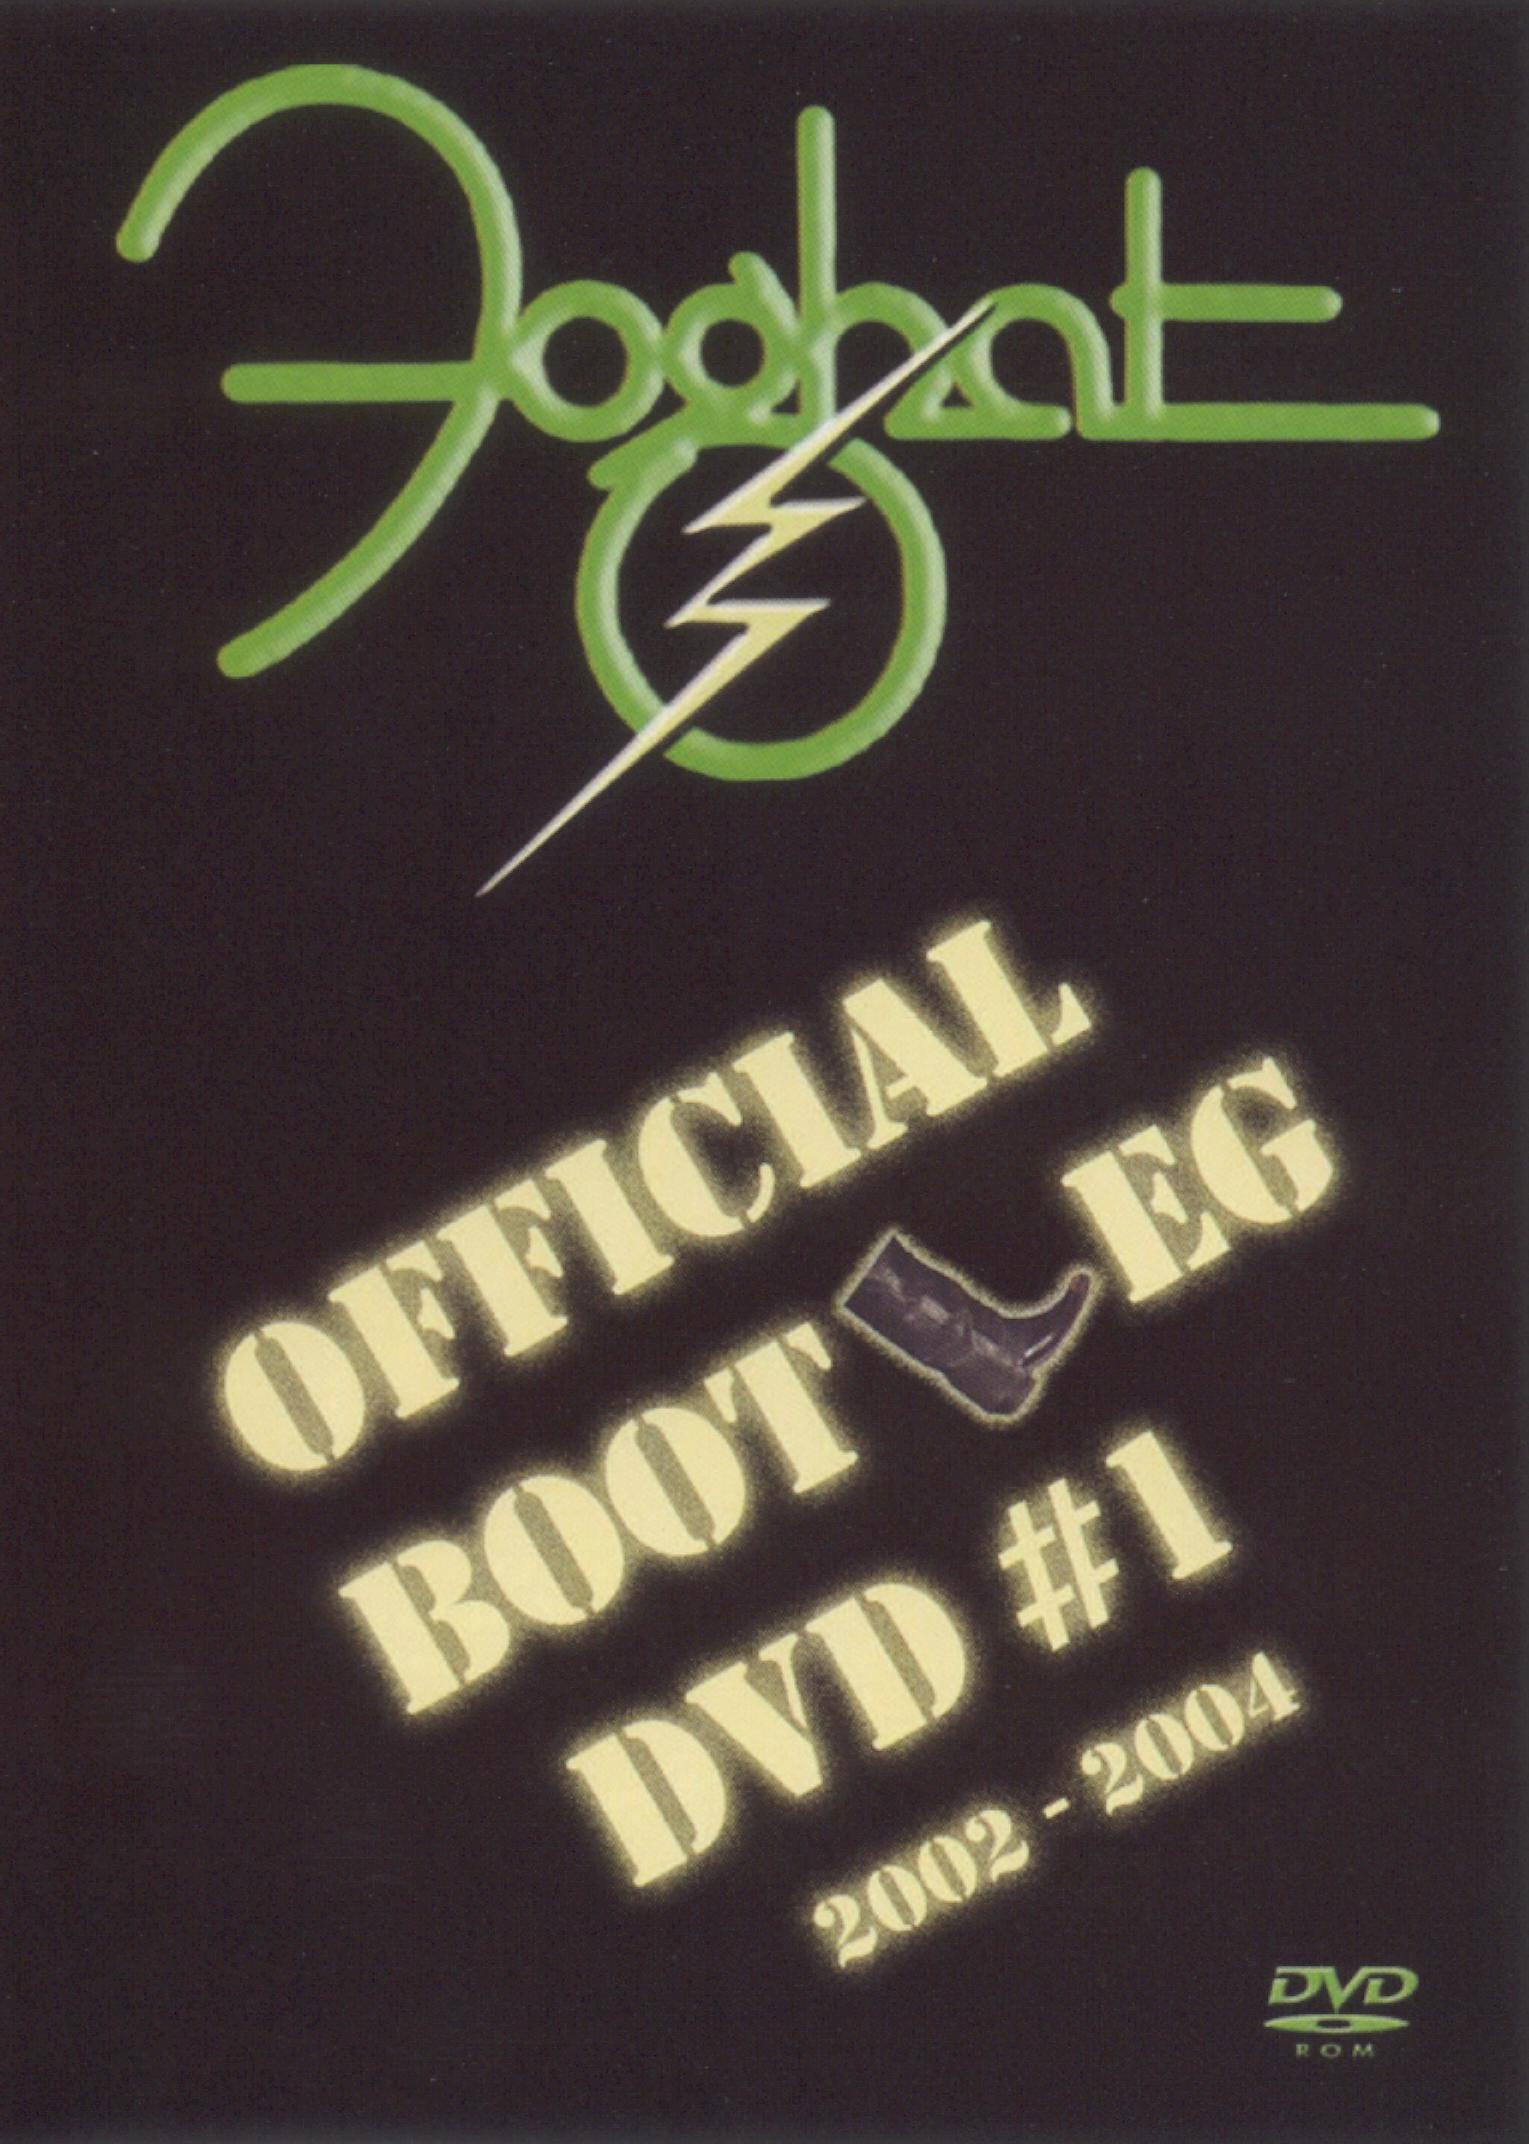 Foghat: The Official Bootleg DVD, Vol. 1 - 2002-2004